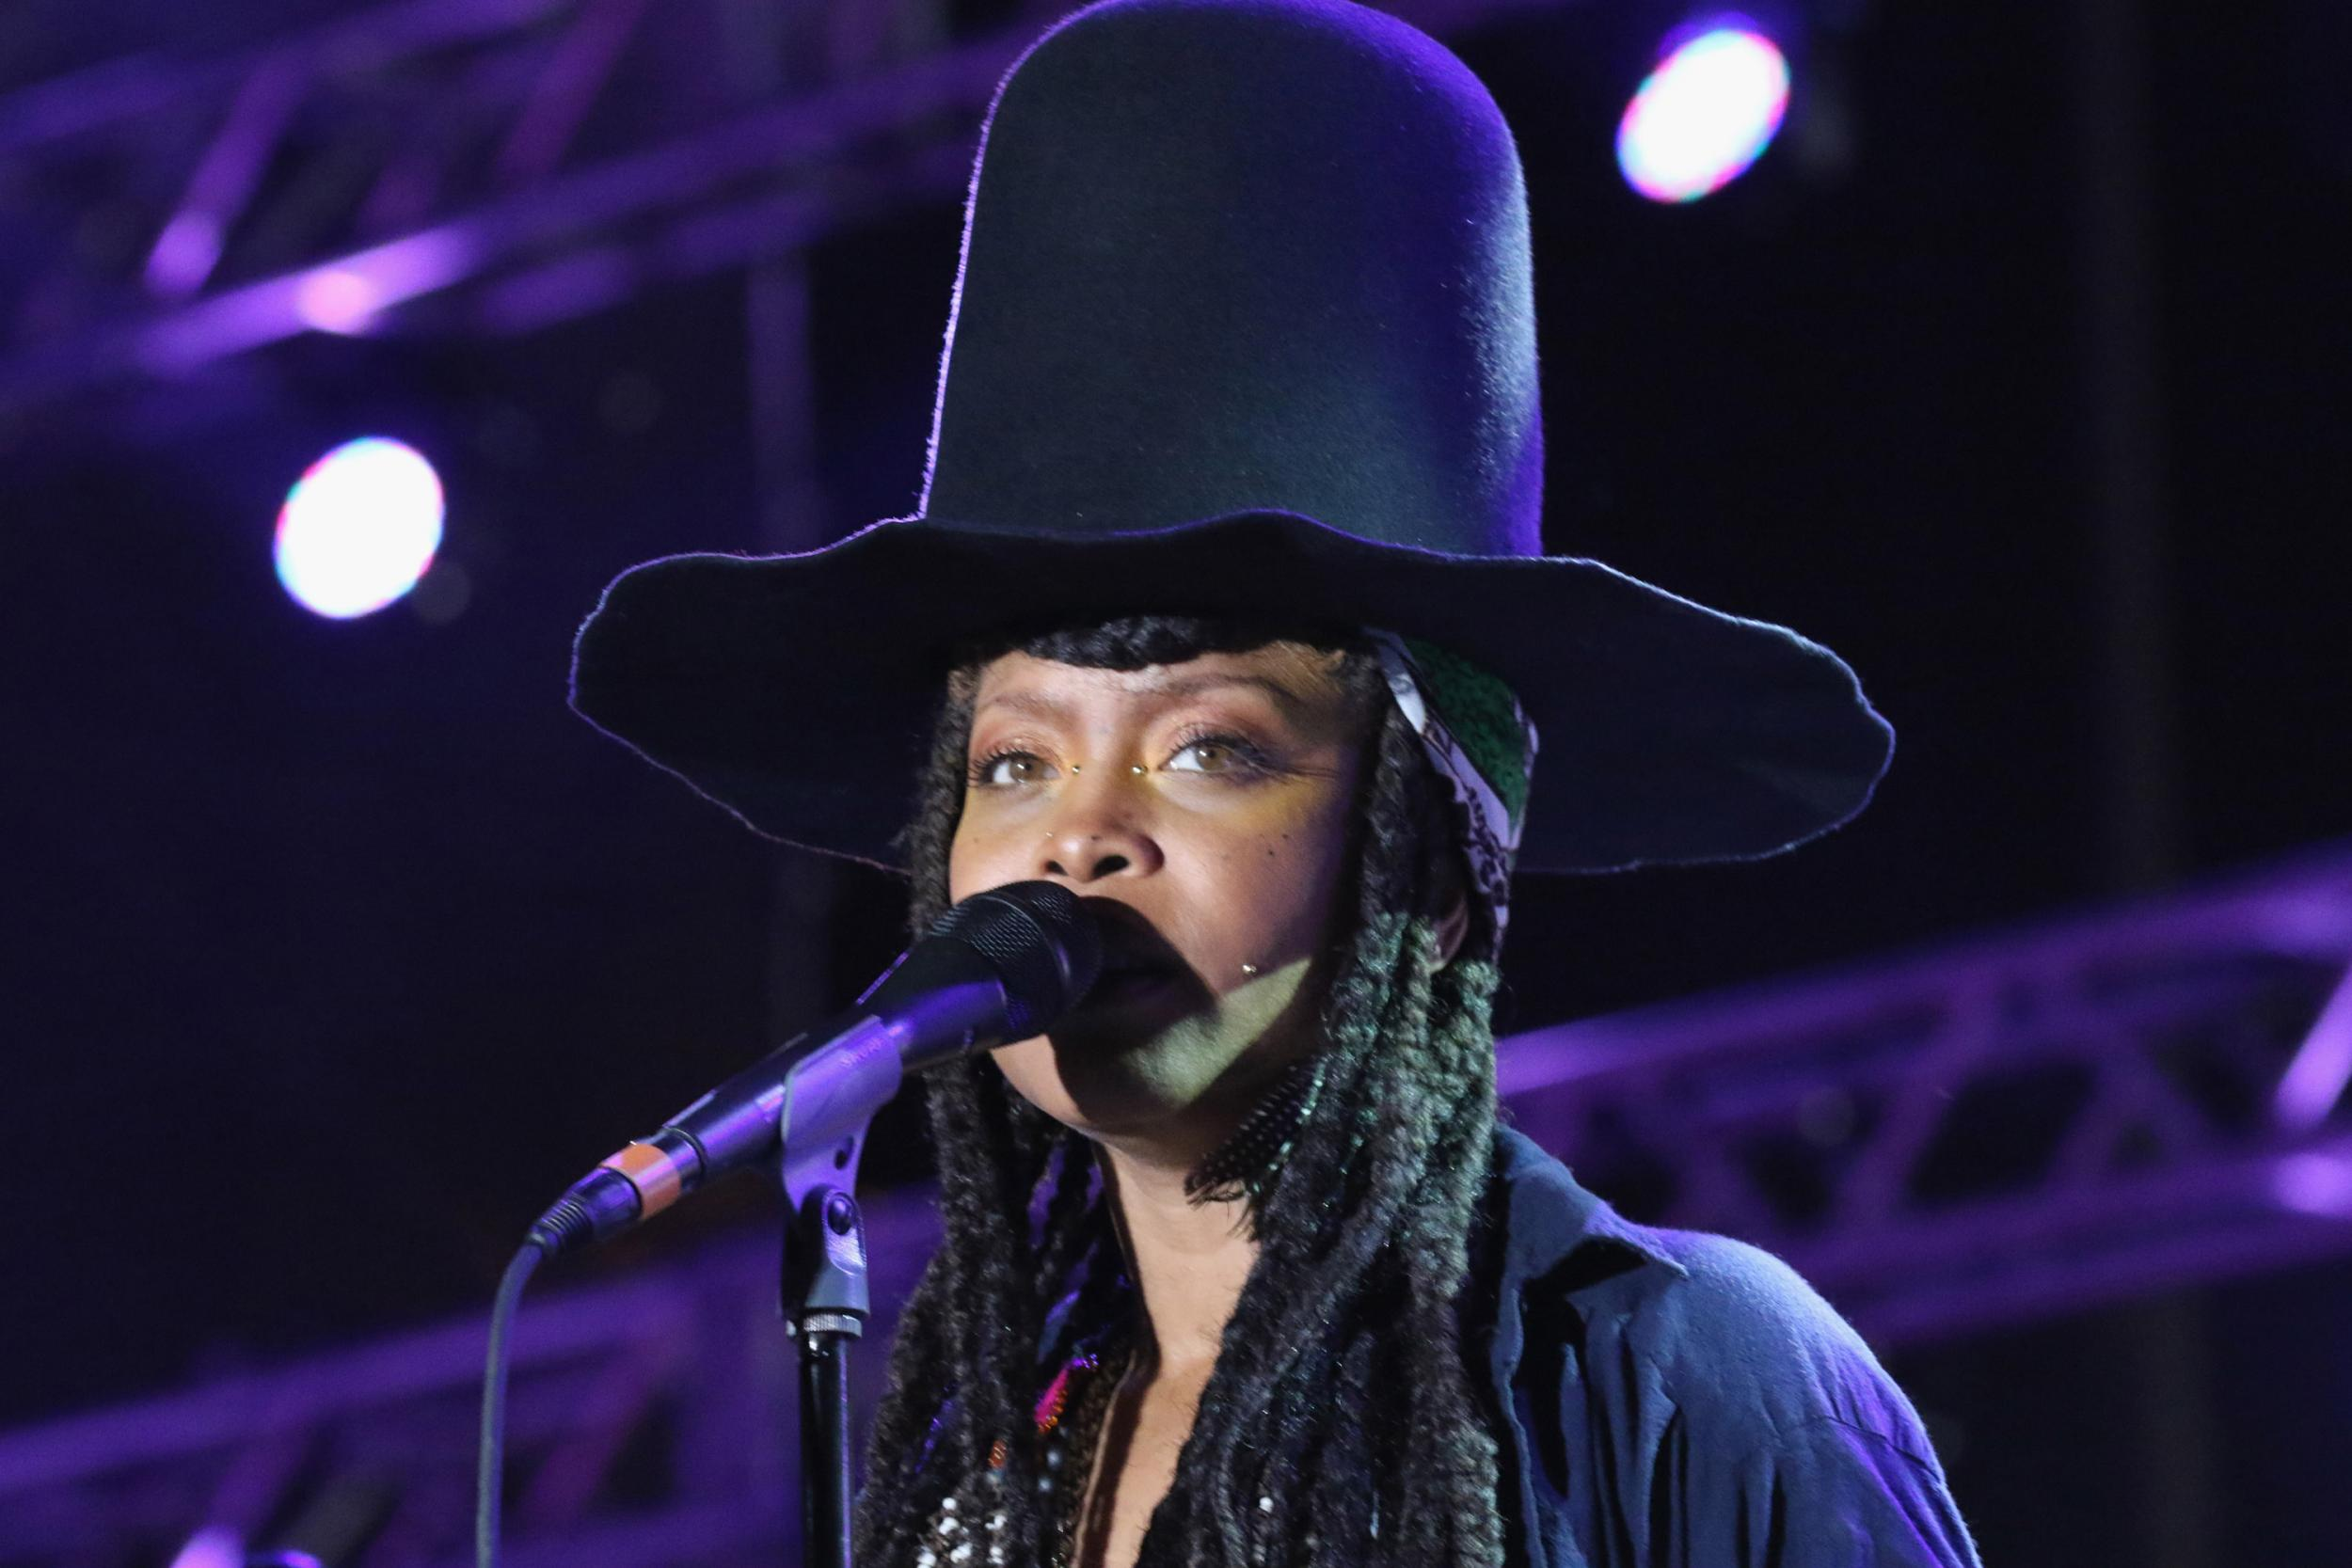 Erykah Badu accused of victim-blaming after saying girls should wear knee length skirts to stop distracting men